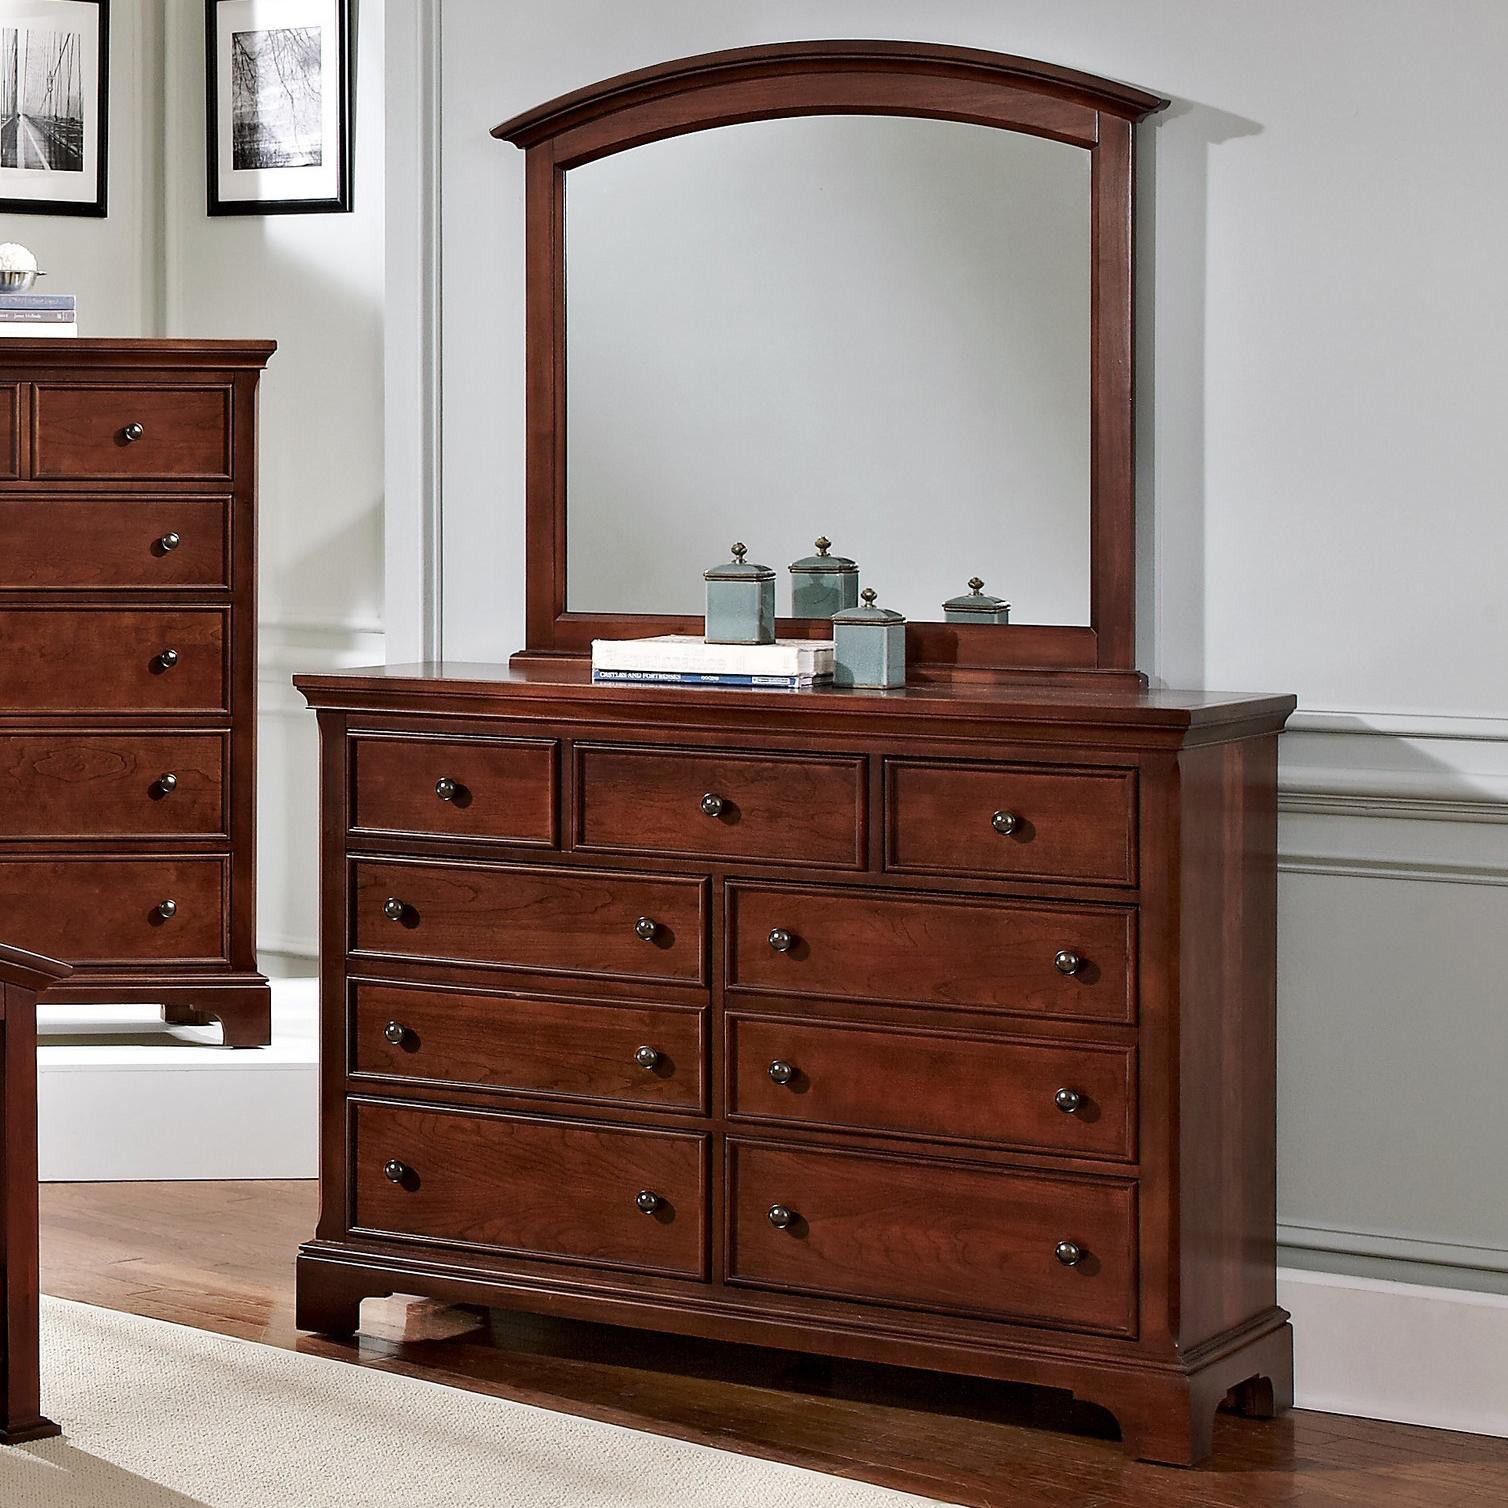 Vaughan Bassett Forsyth 7 Drawer Dresser and Arched Mirror - Item Number: BB77-002+447